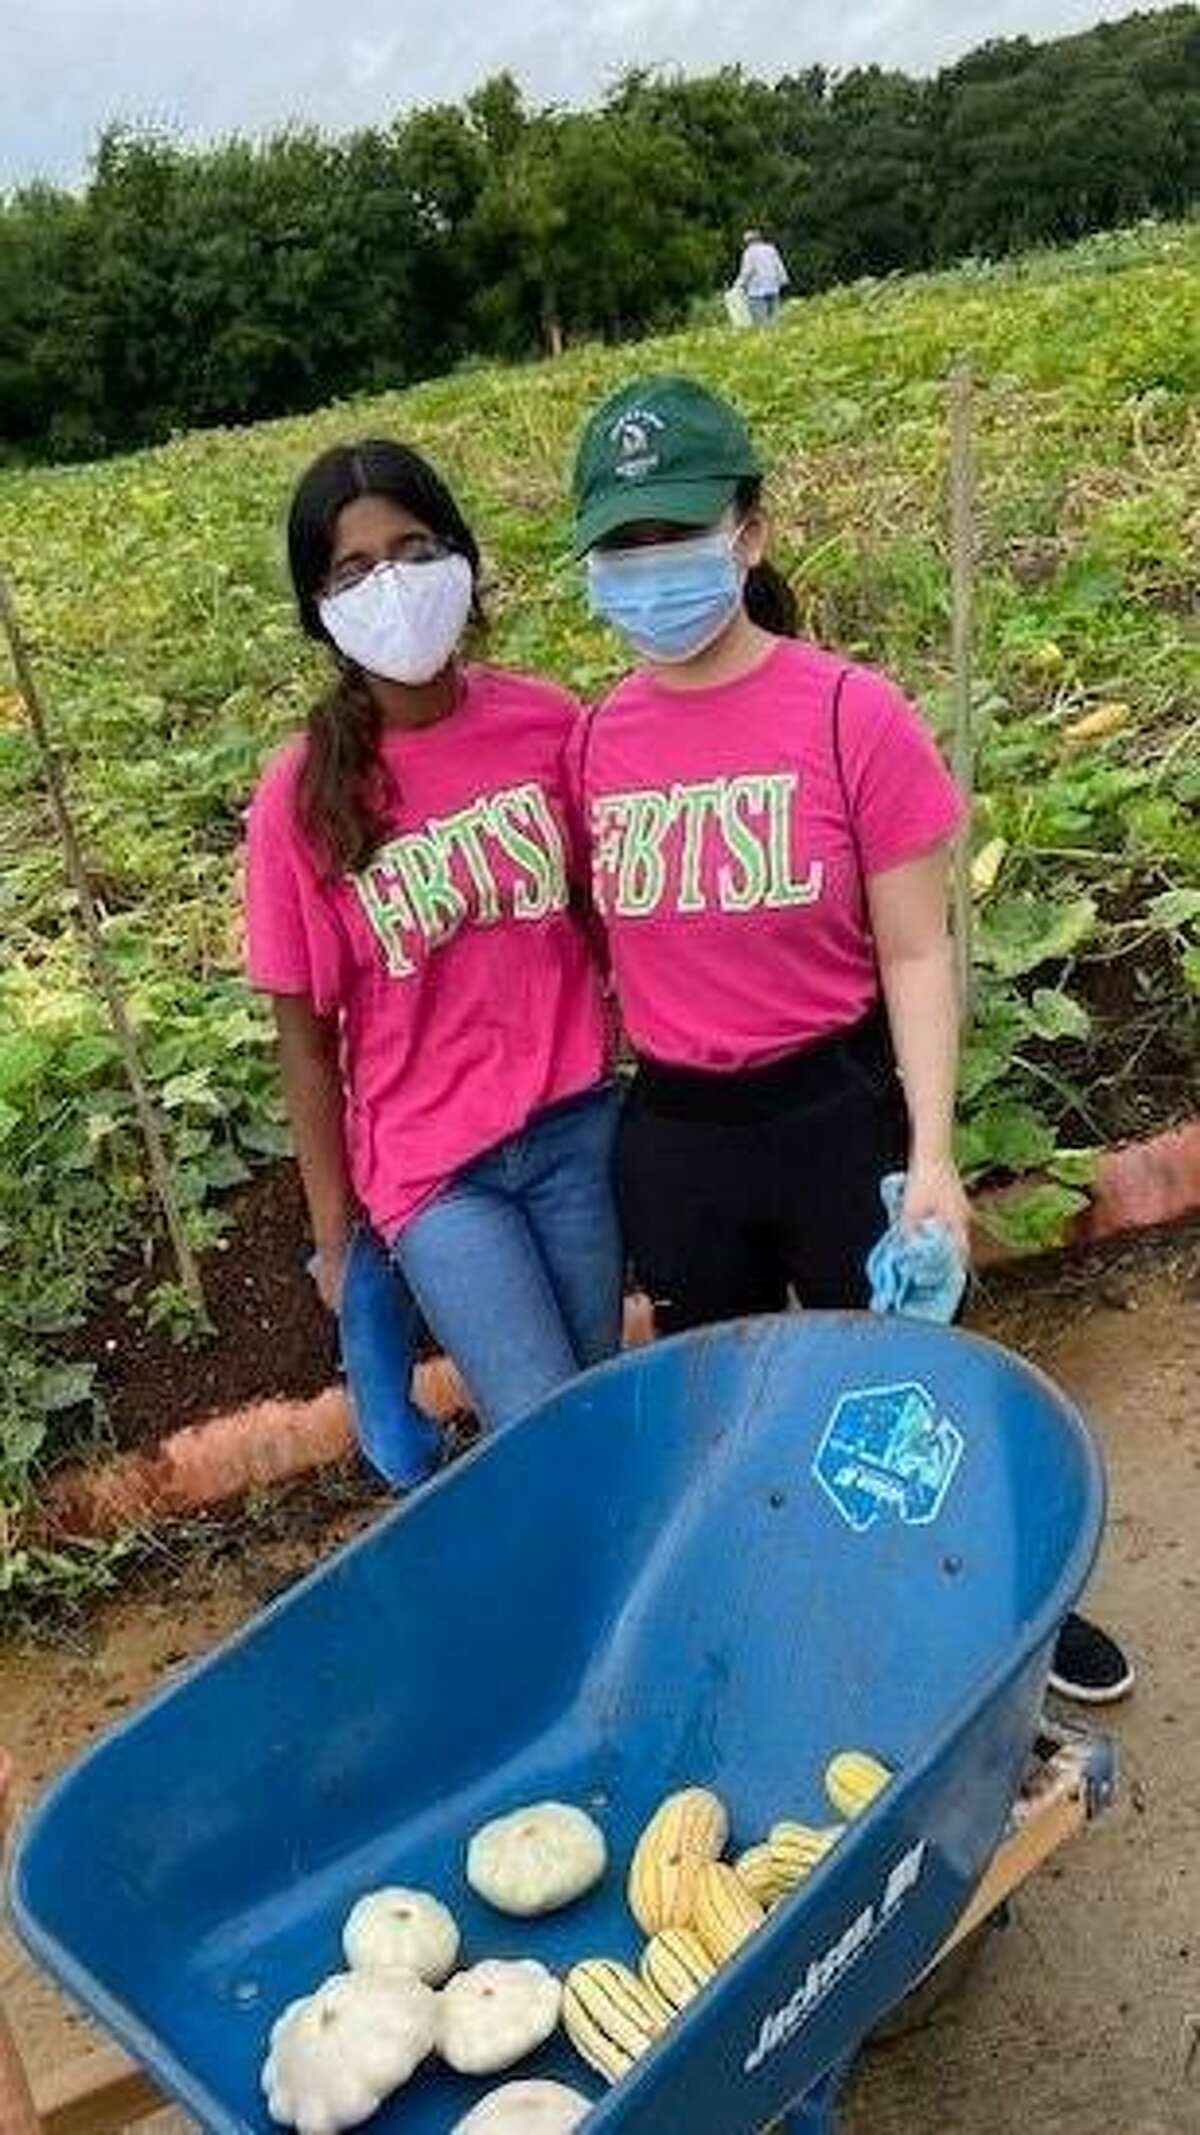 Leah Philip, left, and Annebelle Cheong harvest vegetables at Gods Garden in Sugar Land as part of their Fort Bend Teen Service League service.